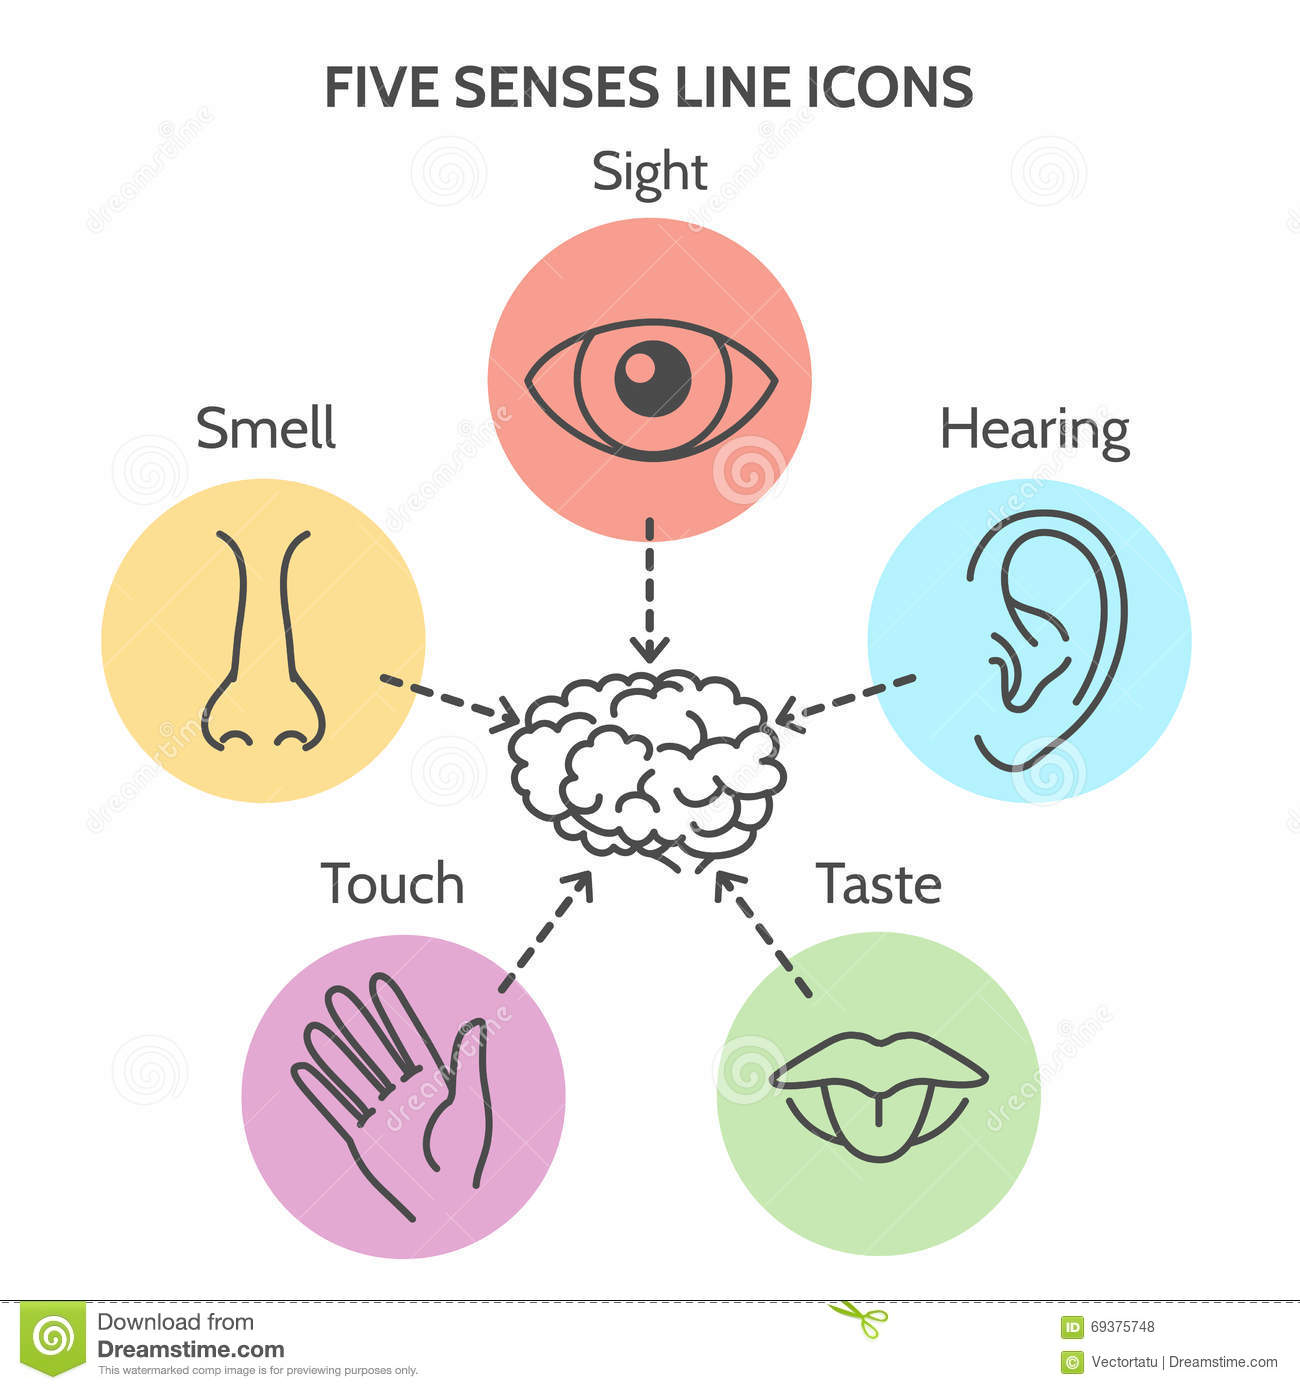 Count Pictures Up To Five in addition Body Parts Matching in addition Kids Activity Worksheets Feeling likewise D D Beb C C D F Dae E as well Senses Printable. on drawing 5 senses worksheet